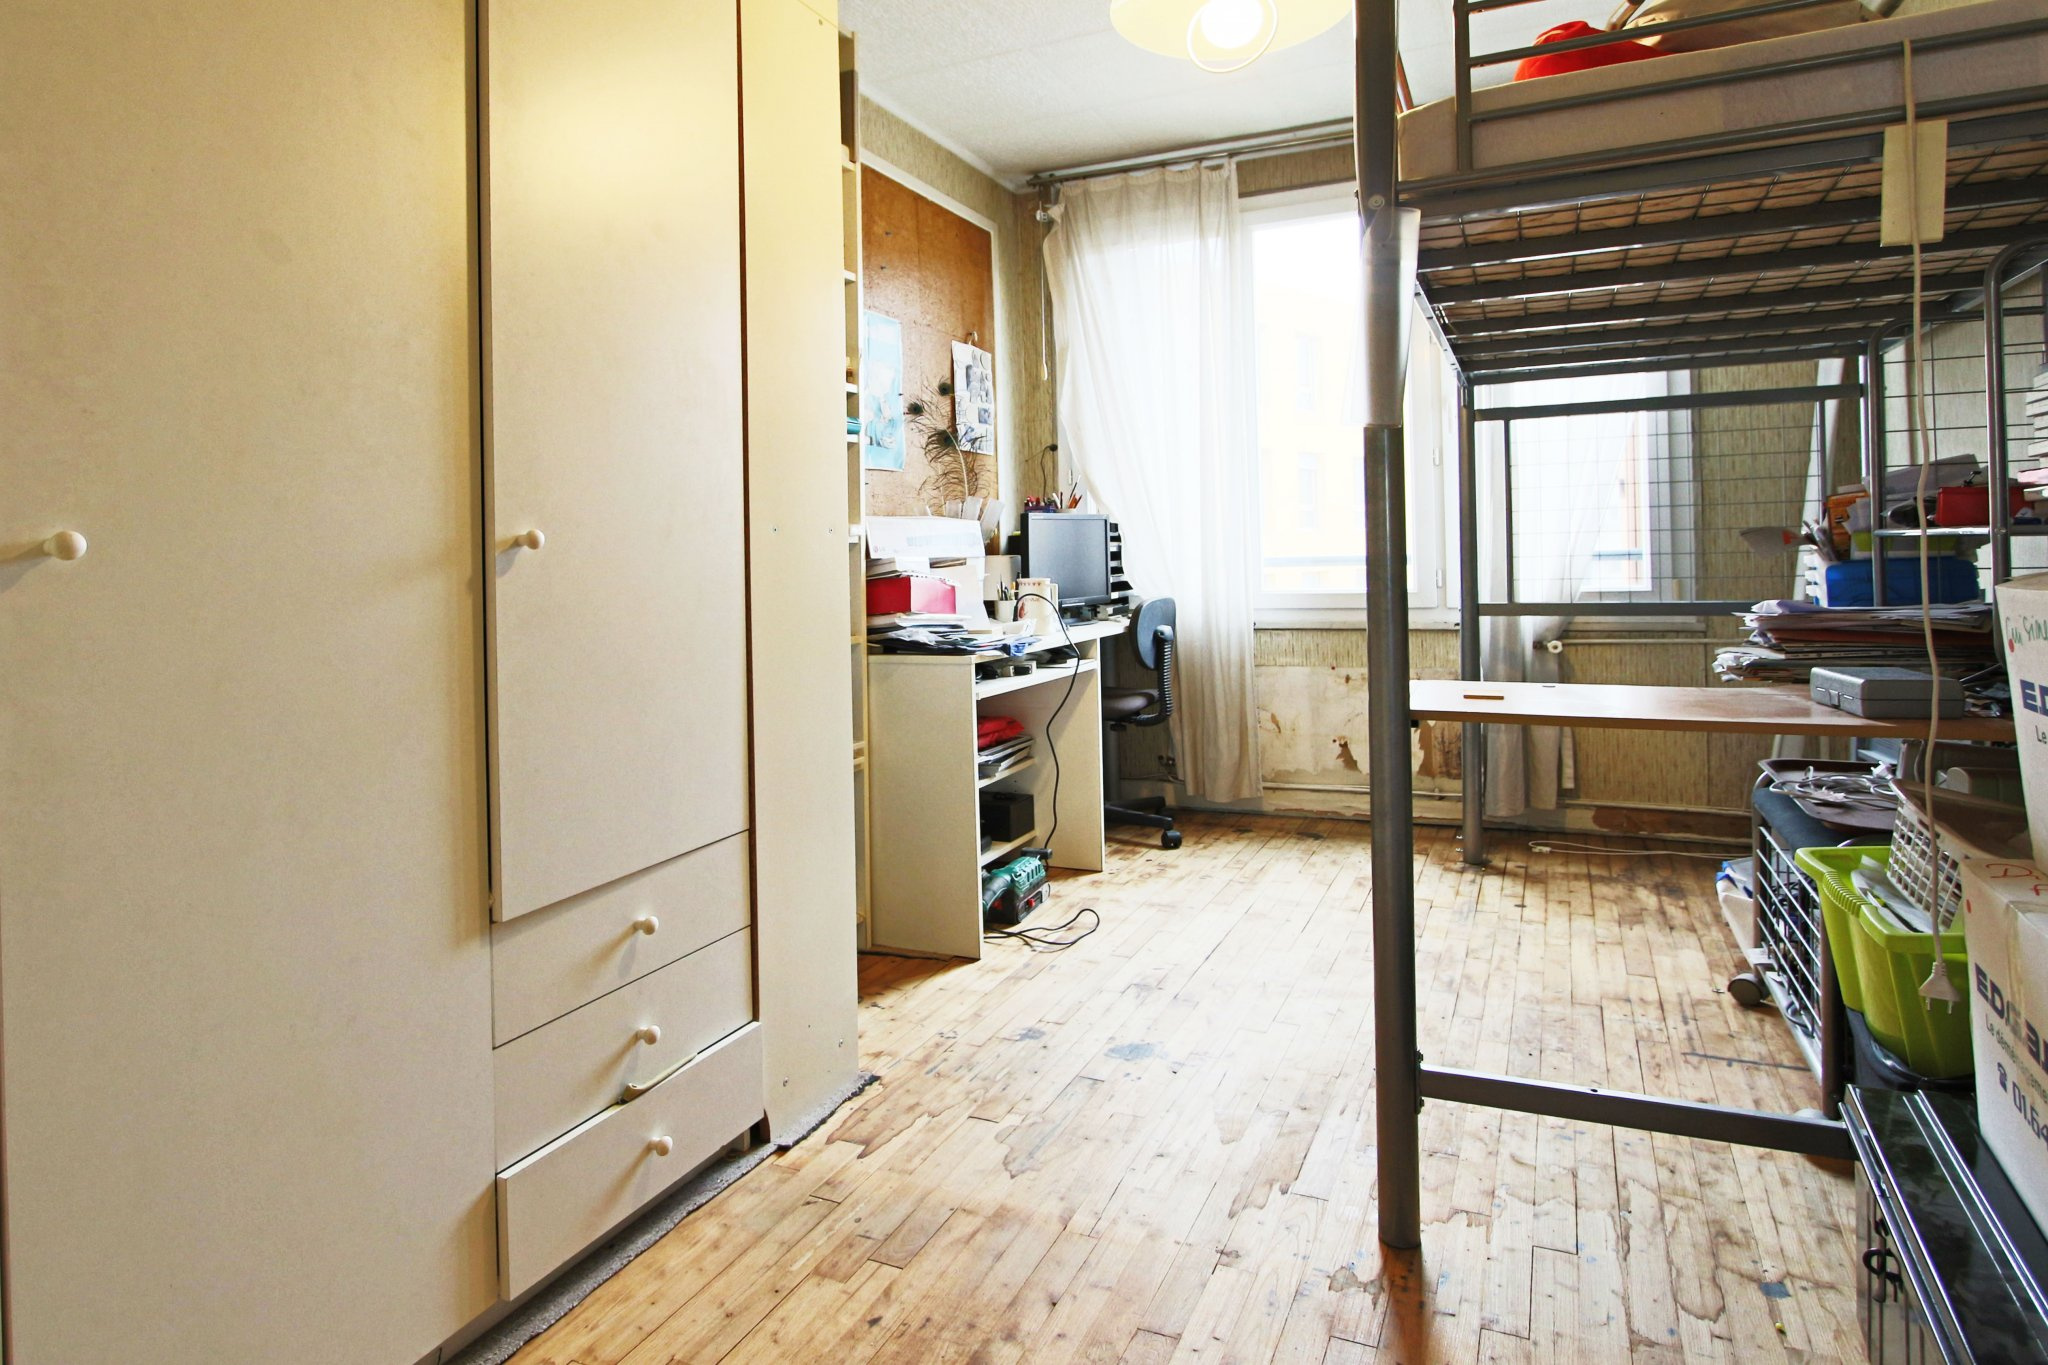 Image_8, Appartement, Montreuil, ref :V390004070